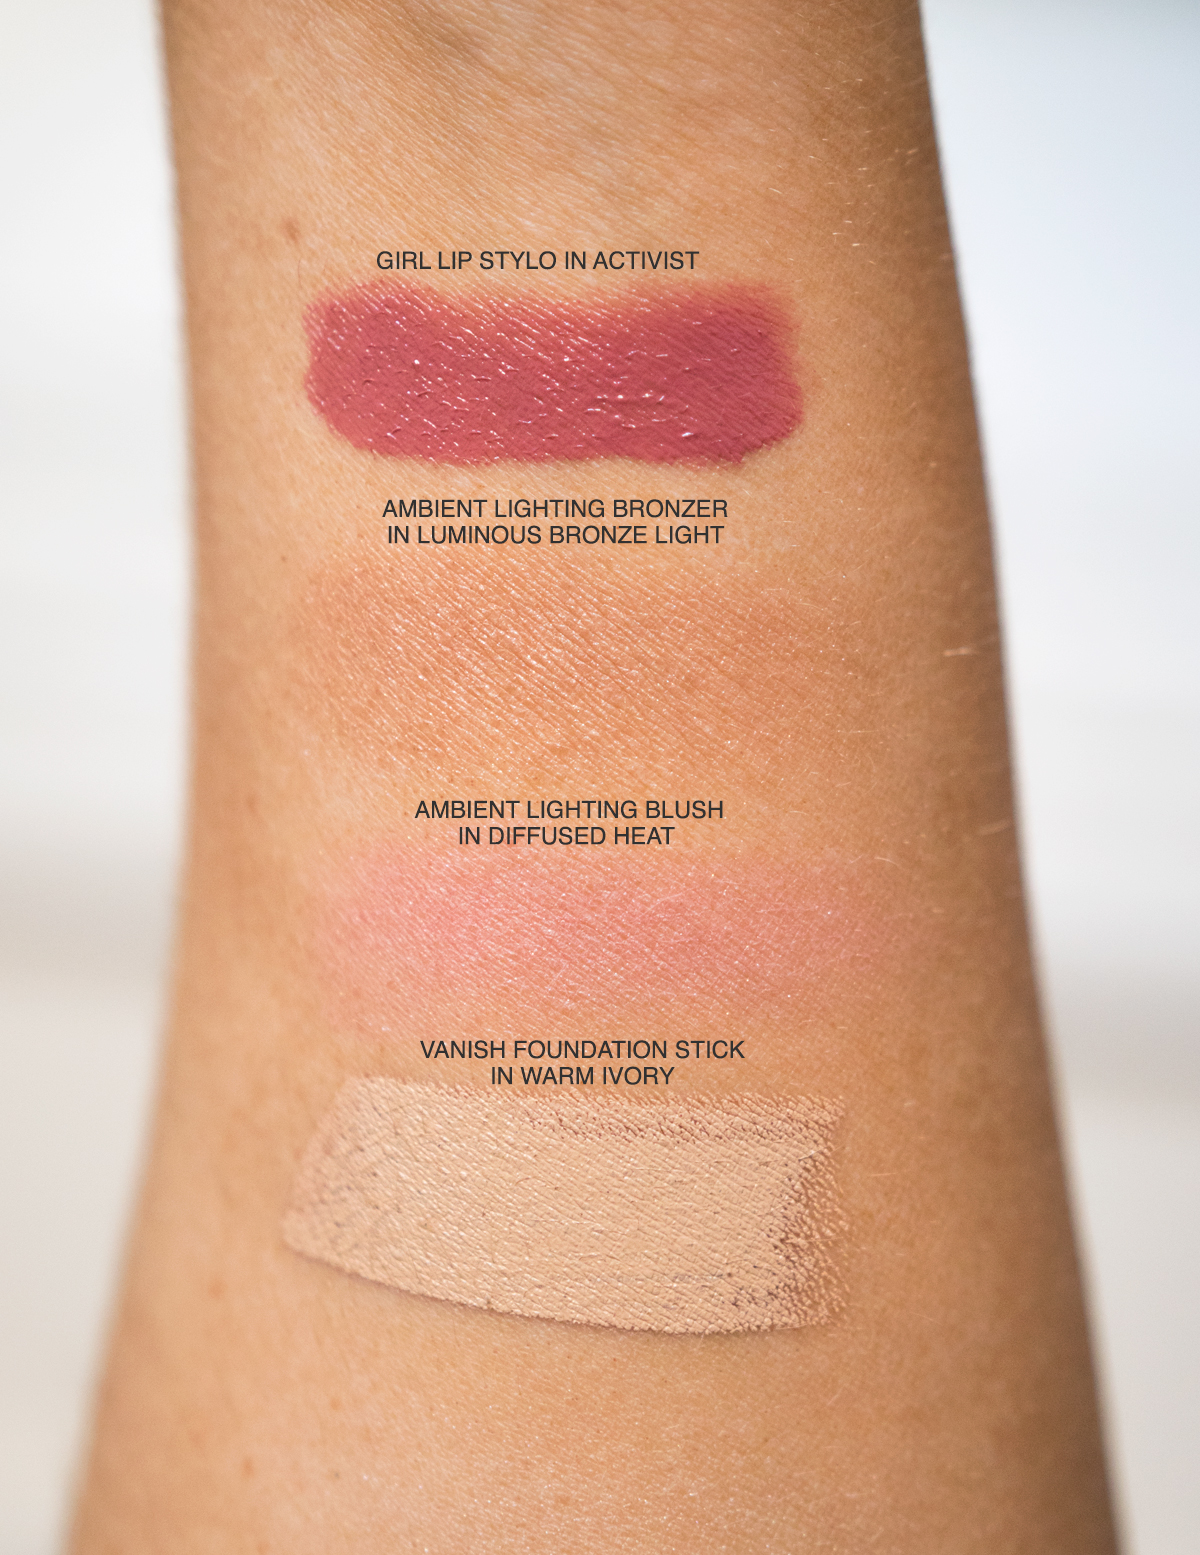 Hourglass First Impressions Review & Swatches